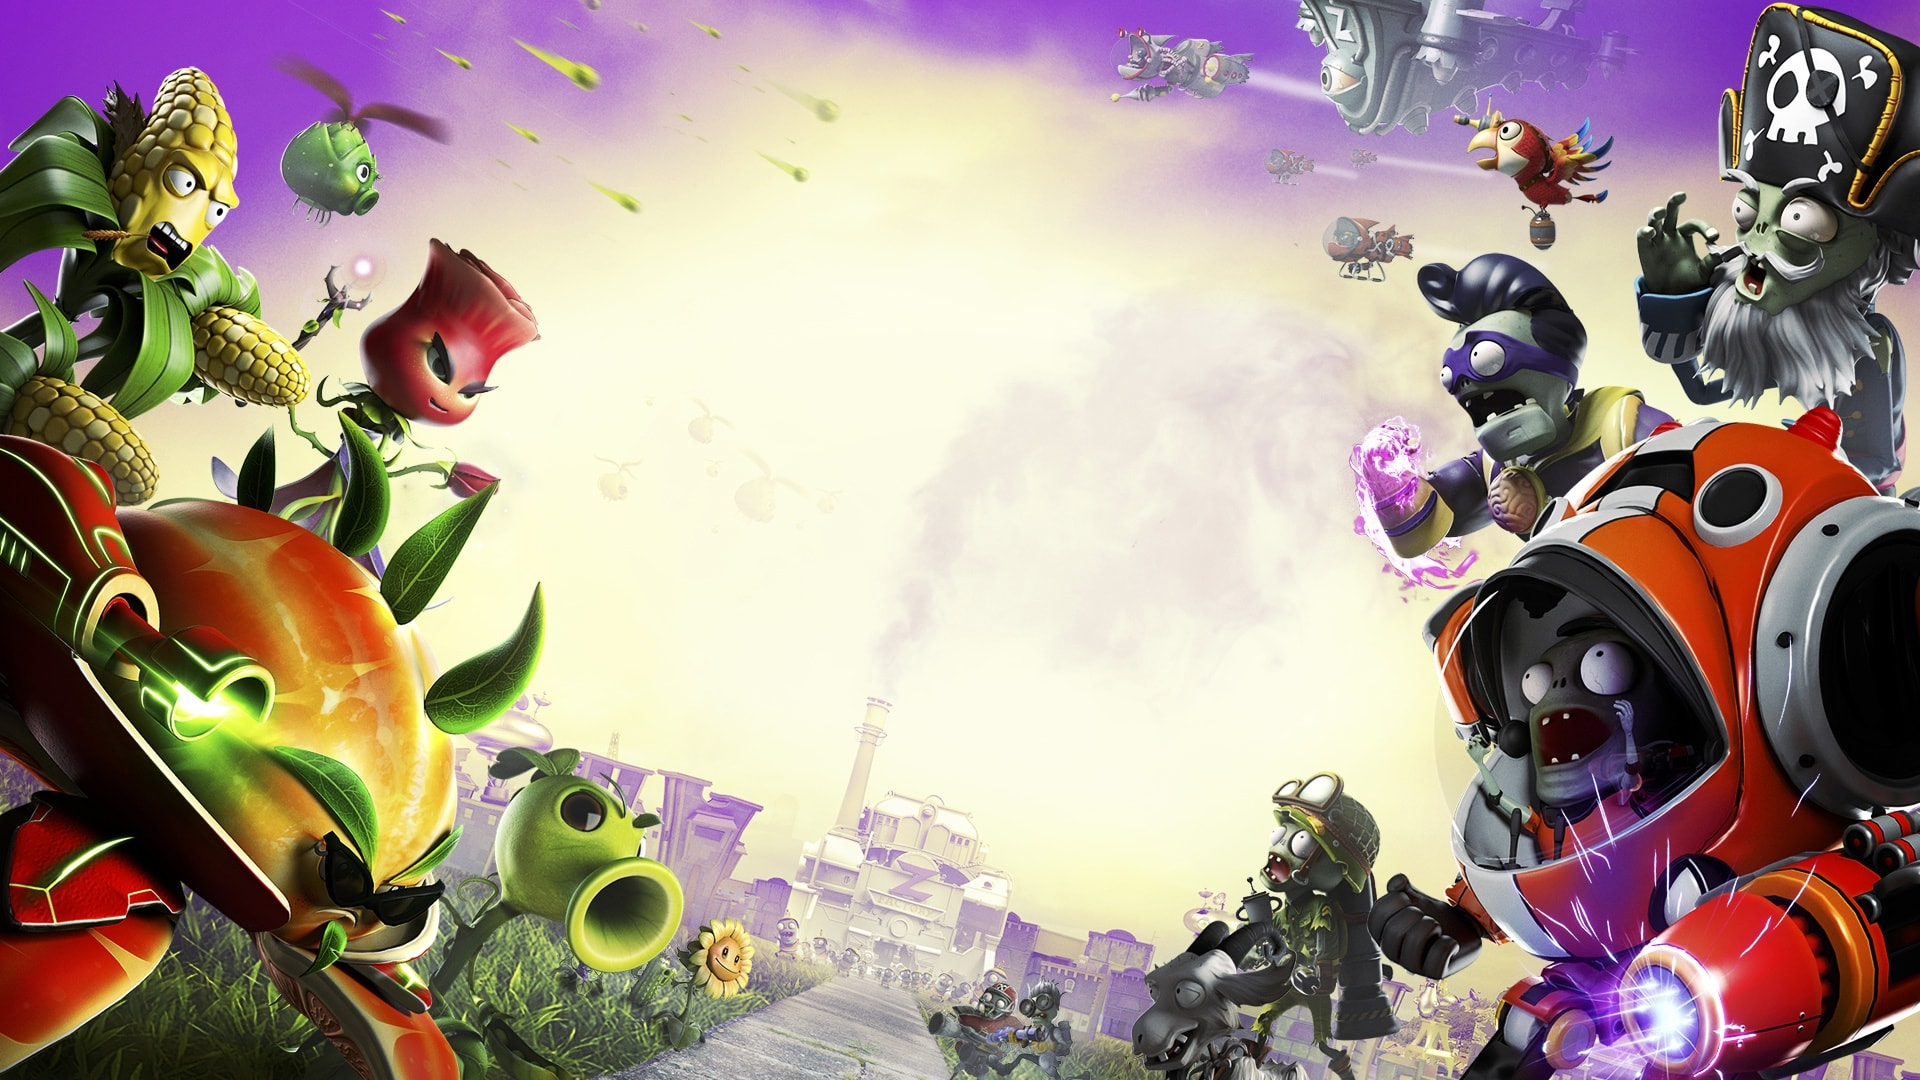 plants vs. zombies: garden warfare 2 hd desktop wallpapers